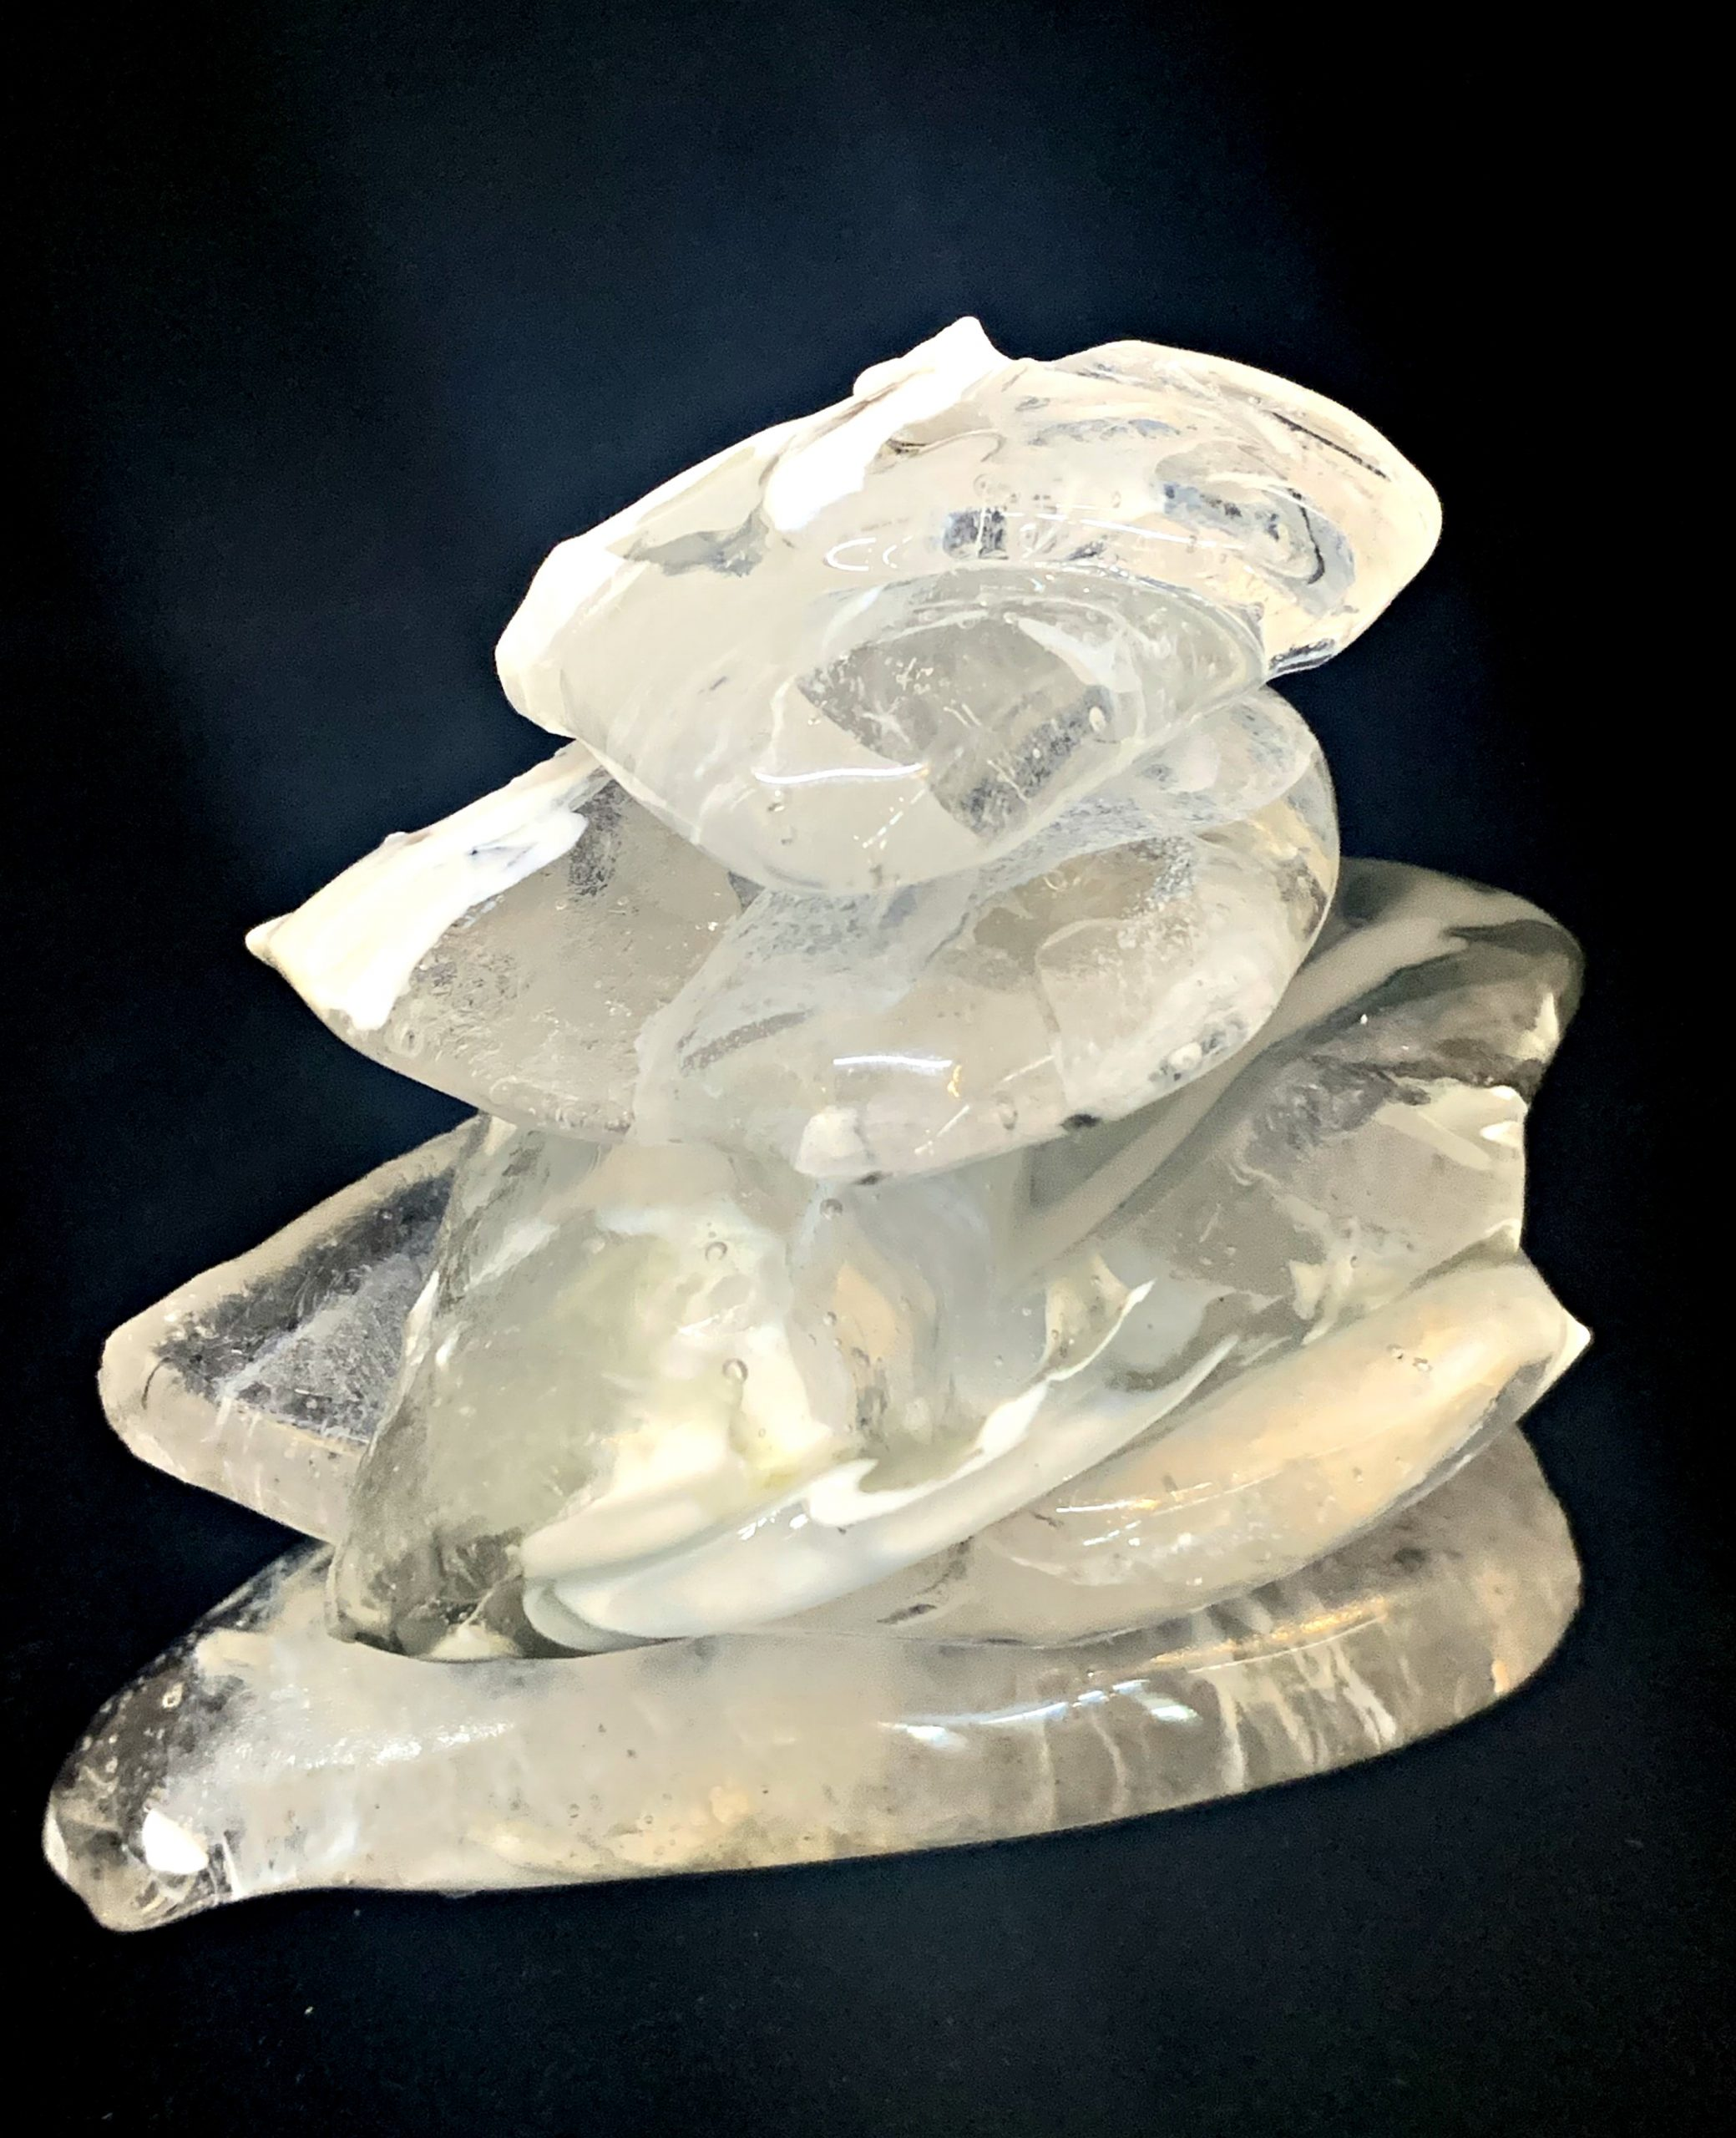 Cast Glass Rocky Mountain Cairn 12 sculpture by Heather Cuell | Effusion Art Gallery + Cast Glass Studio, Invermere BC